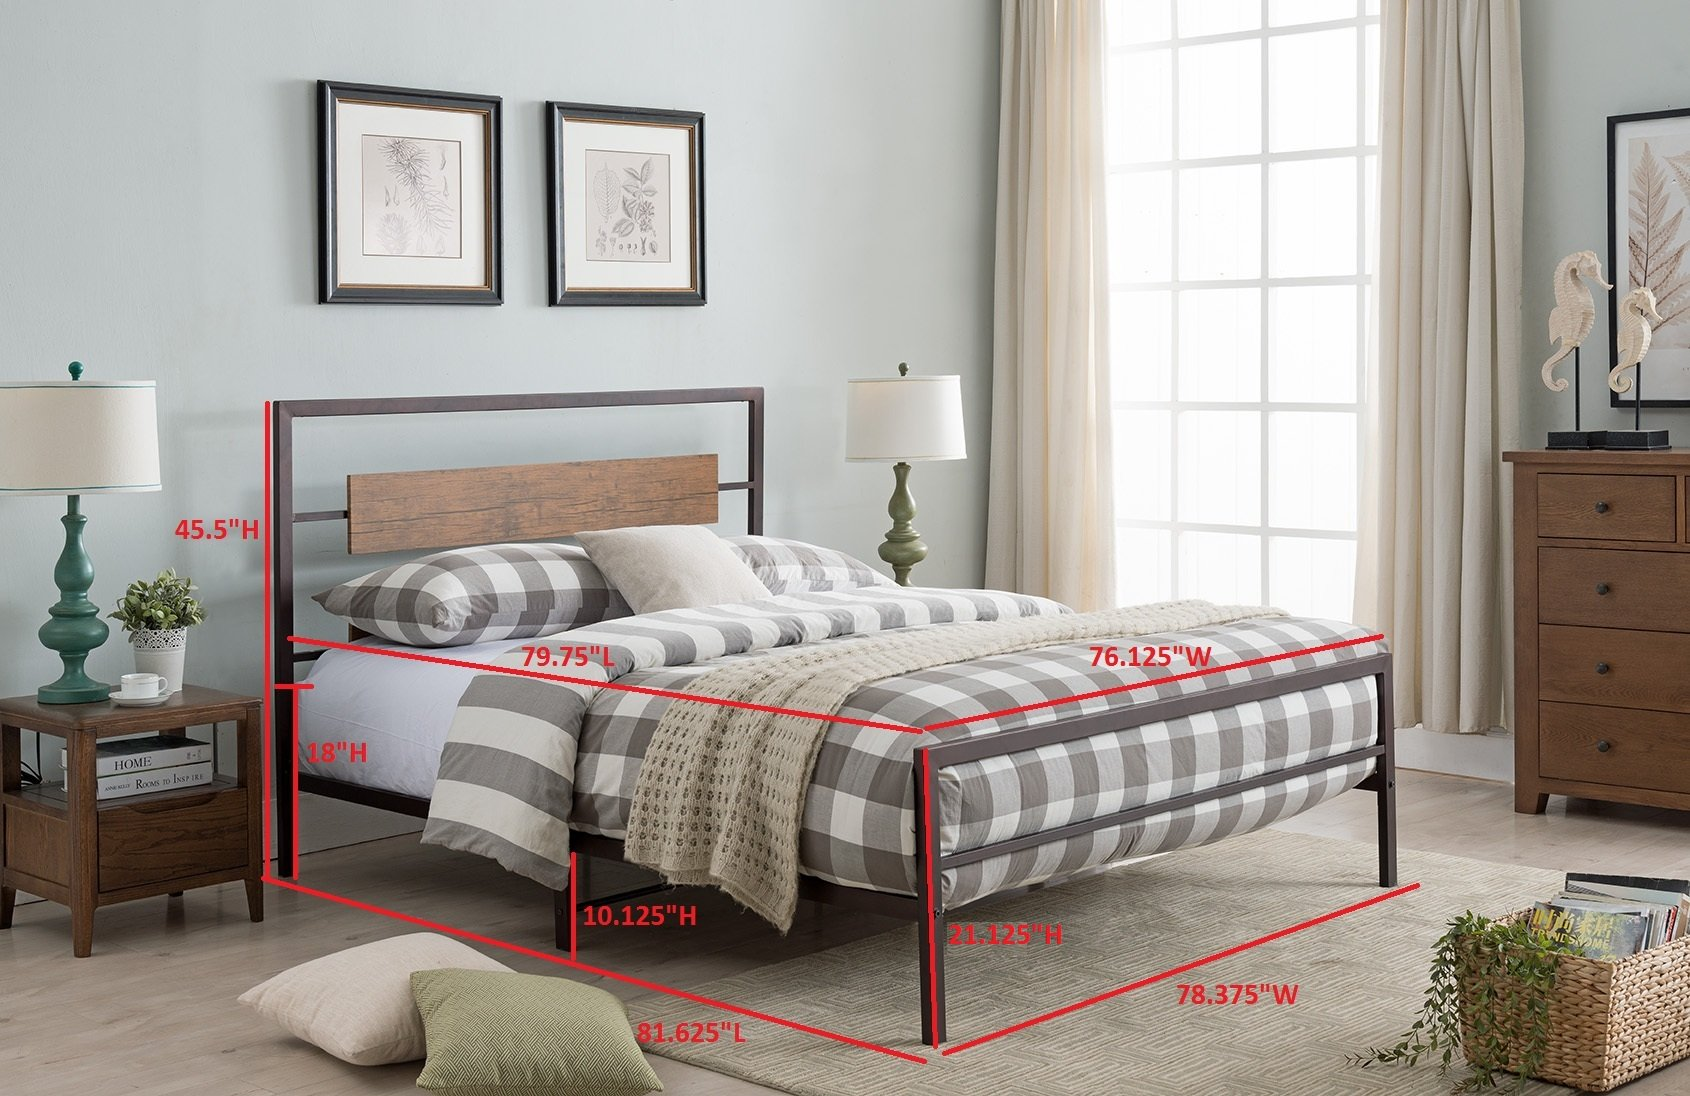 Kings Brand Furniture – Verona Pewter Metal/Walnut Wood Bed with Headboard & Footboard, King - Update your bedroom with the Verona Platform Bed, Headboard, Footboard, Rails, Slats & Center Support. This bed features a strong construction with slats that form a sturdy base to keep your mattress in good shape for longer. Featuring a metal frame with a rectangular reclaimed wood look. - bedroom-furniture, bedroom, bed-frames - 81odbX oaIL -